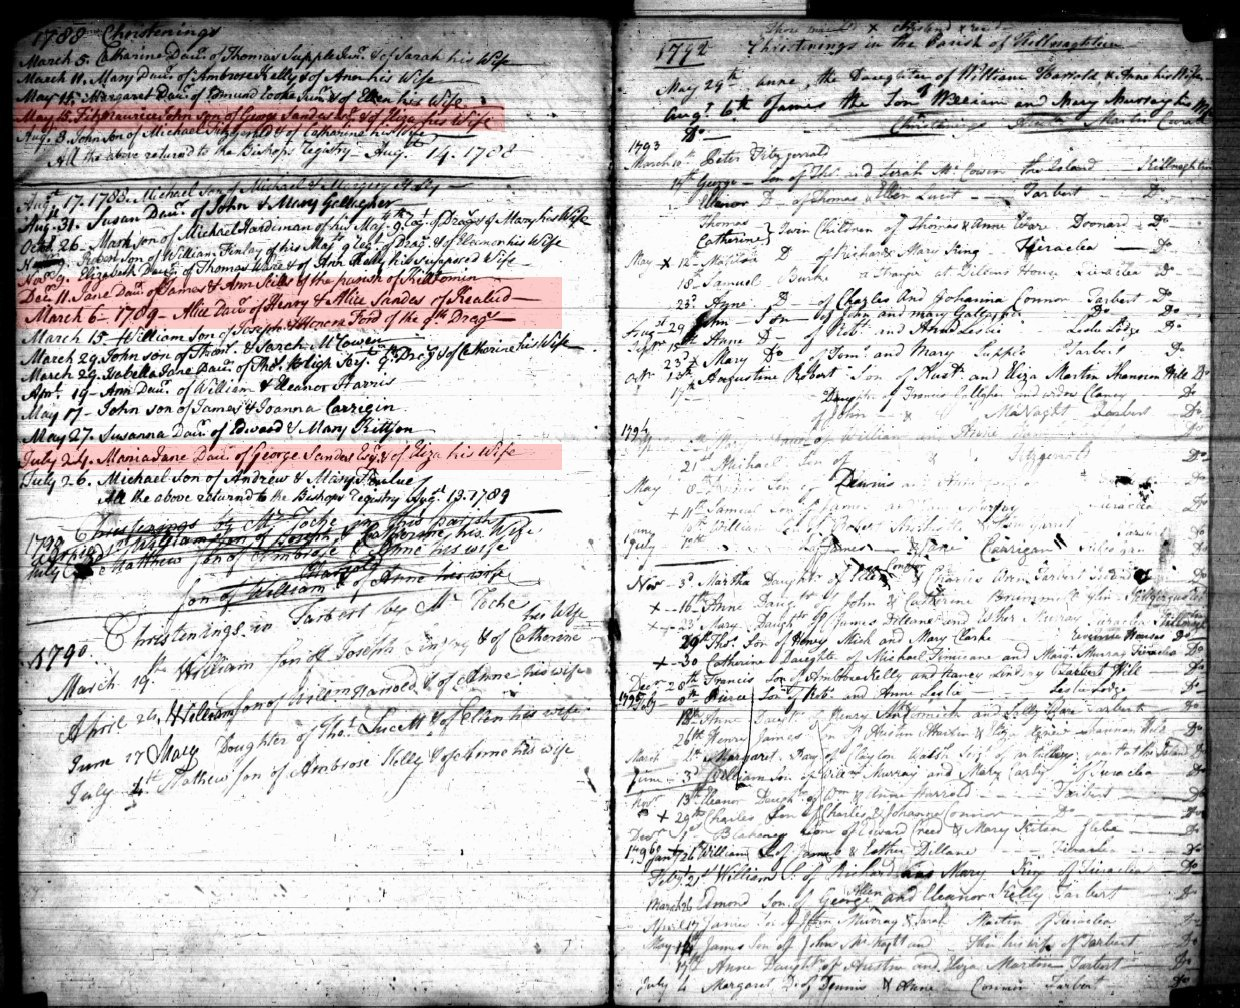 Baptism record for Fitzmaurice John Sandes, Maria Sandes and Alicia Sandes